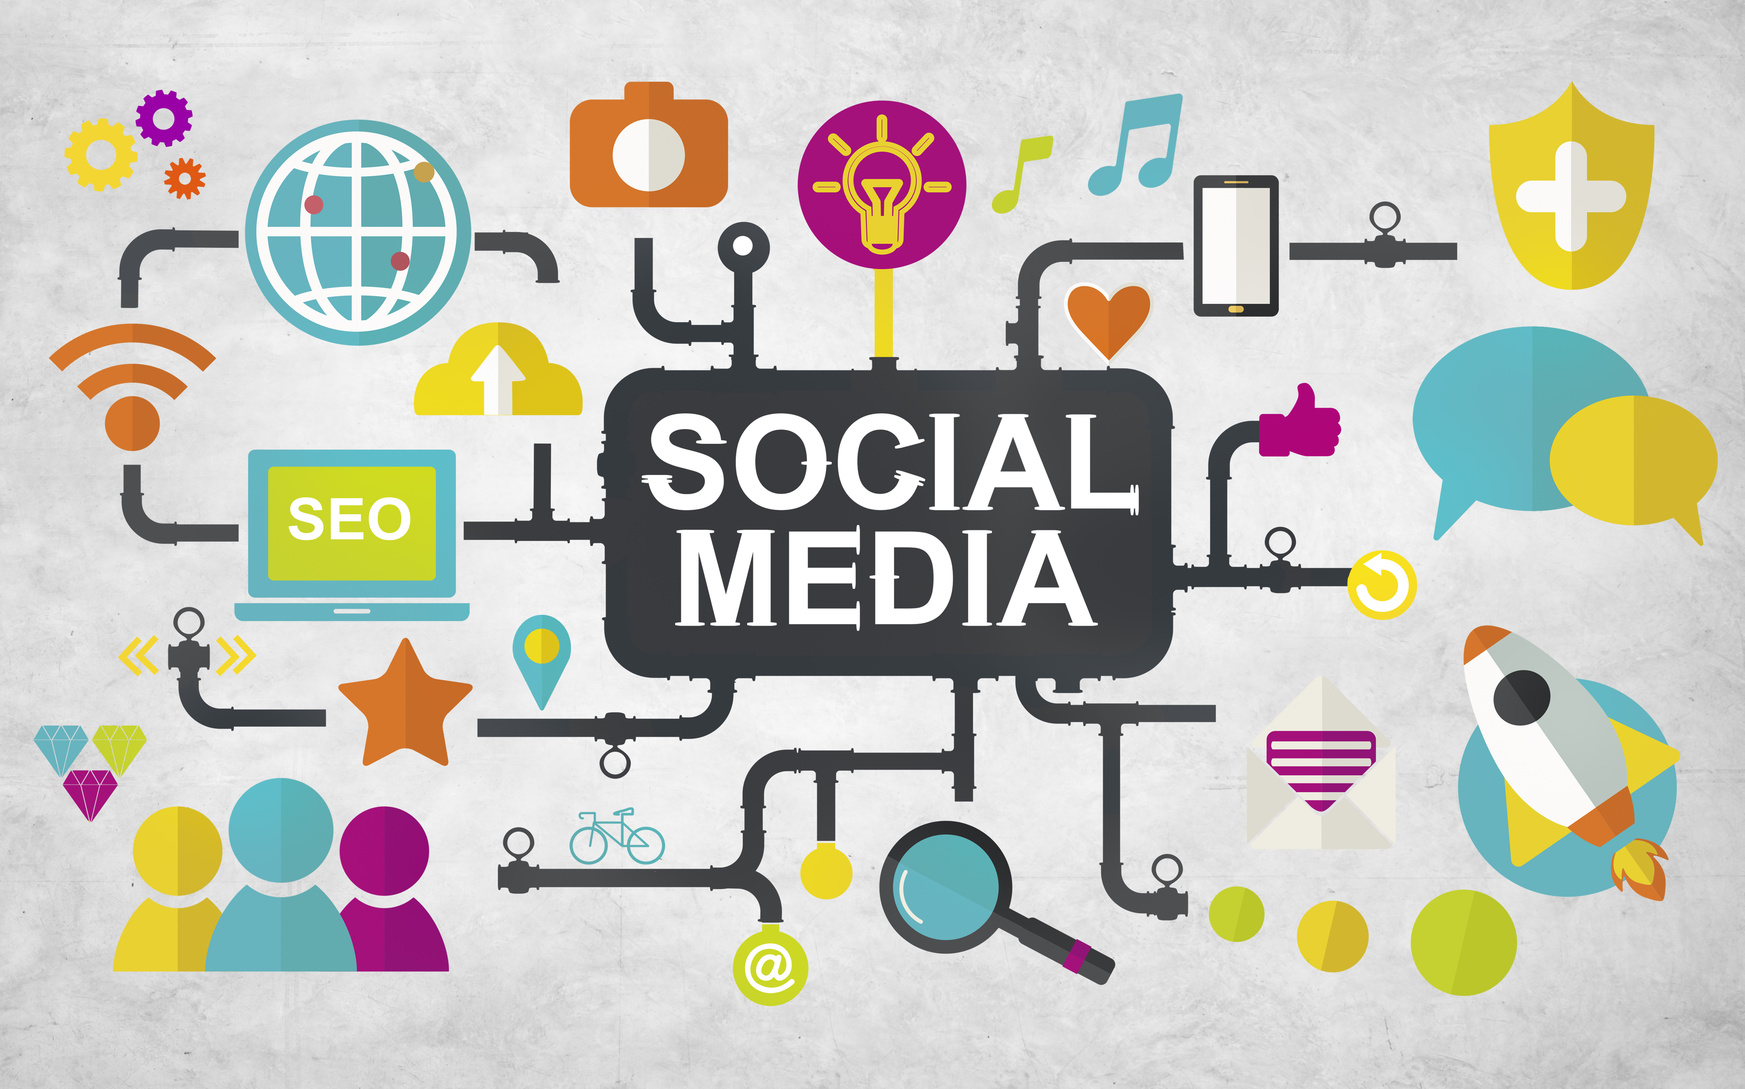 Social Media & Search marketing